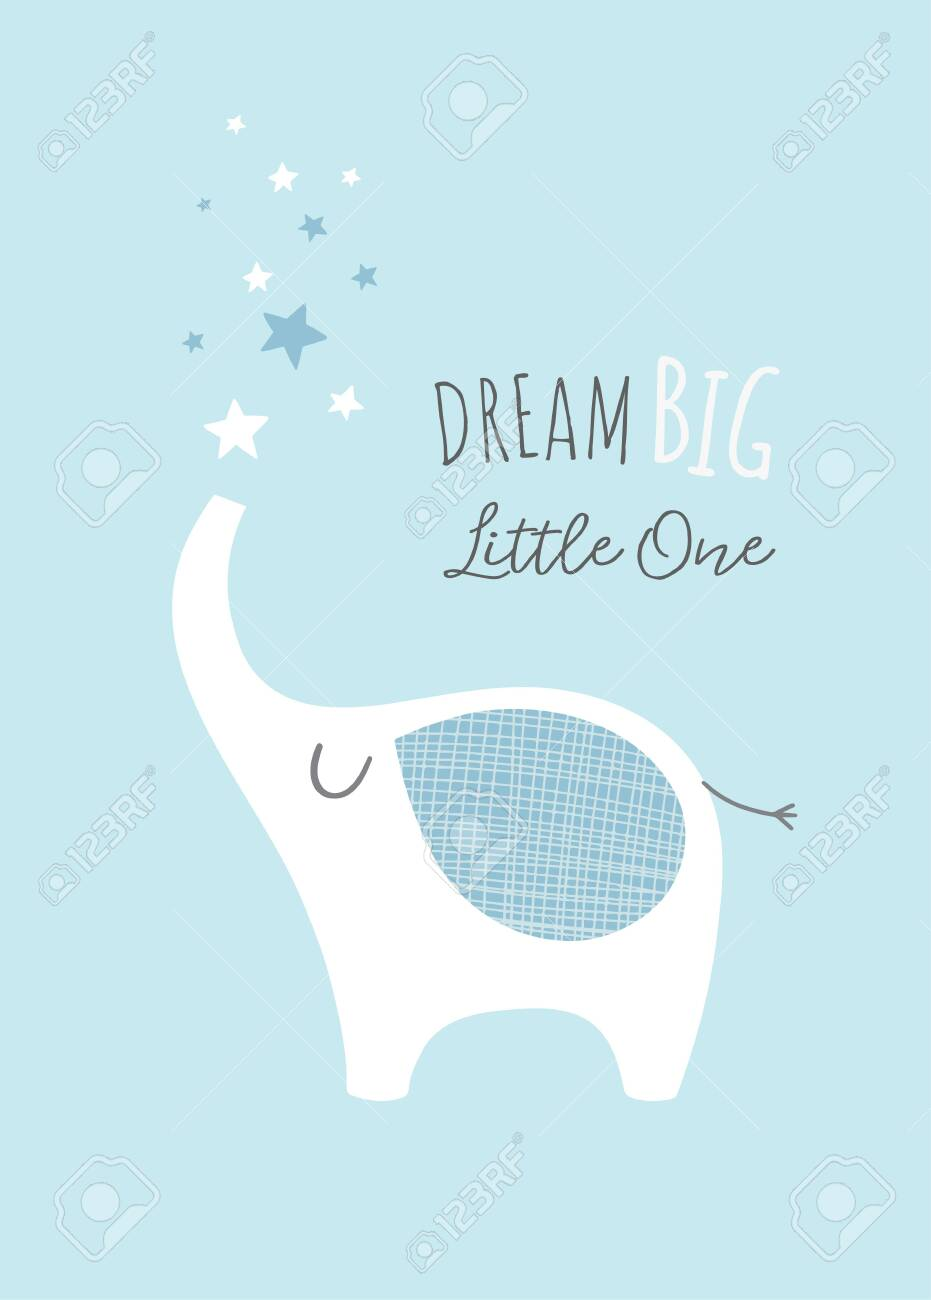 Dream Big Little One With Cute Elephant And Stars Nursery Poster Printable Art For Kids Baby Boy Illustration In Blue Royalty Free Cliparts Vectors And Stock Illustration Image 129291608